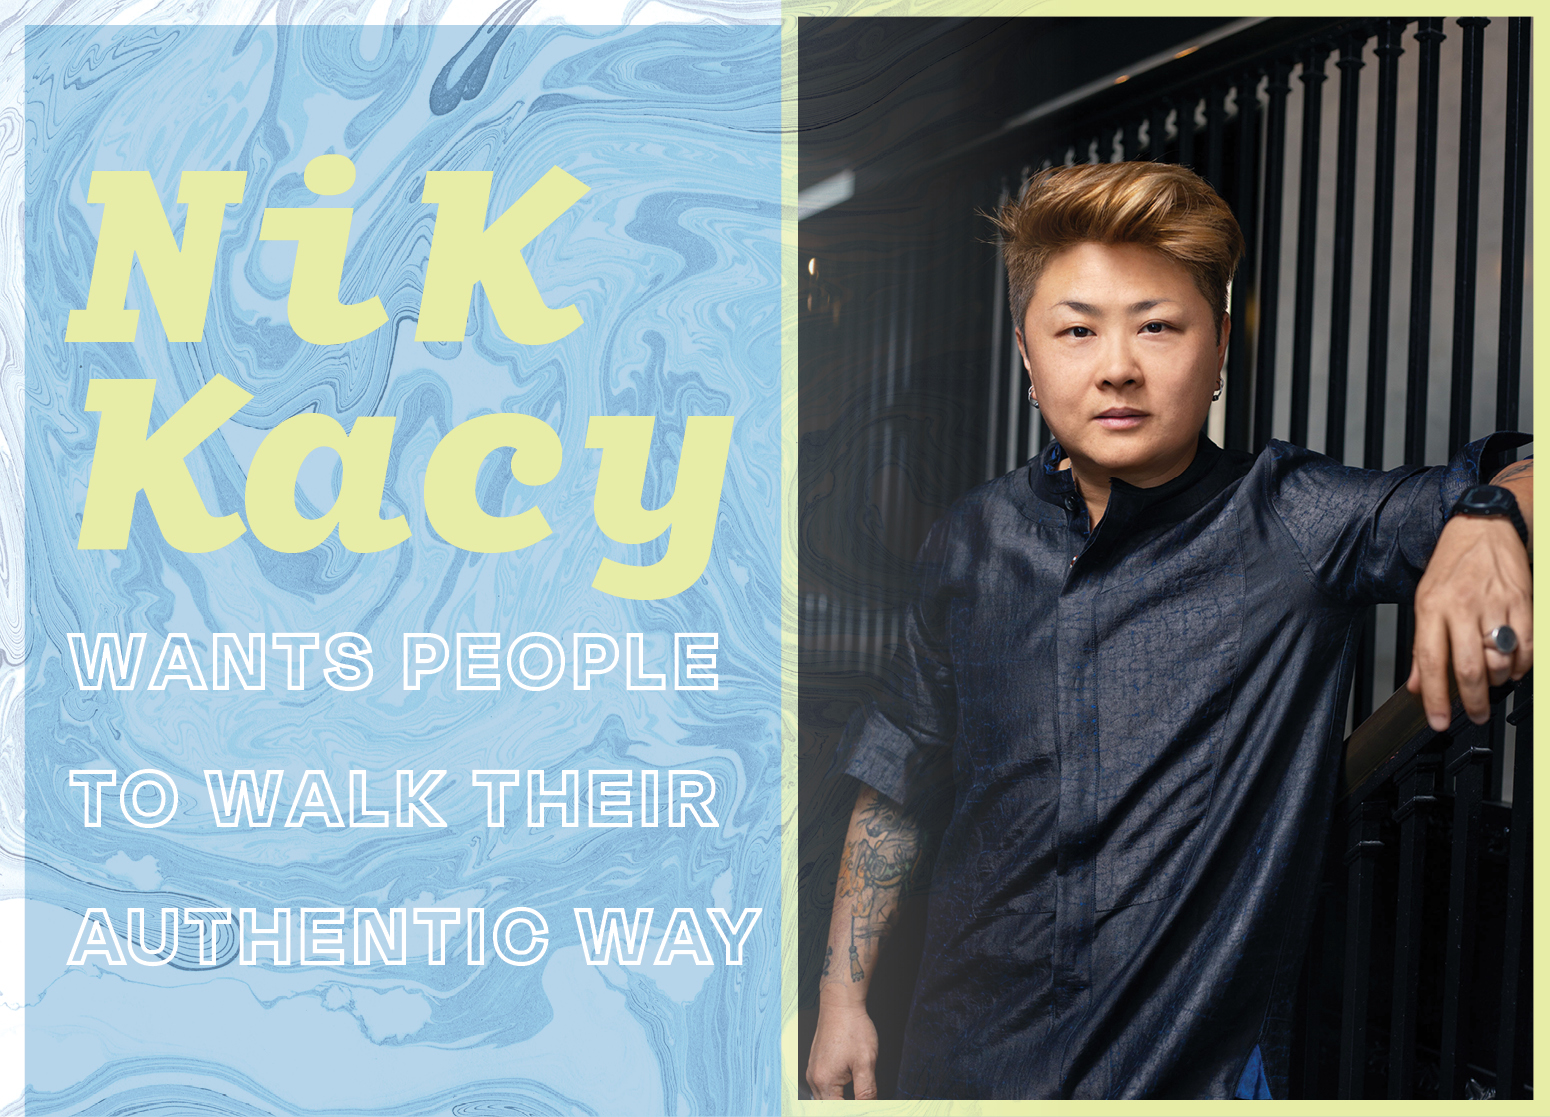 MICAM - NiK Kacy Brand Interview